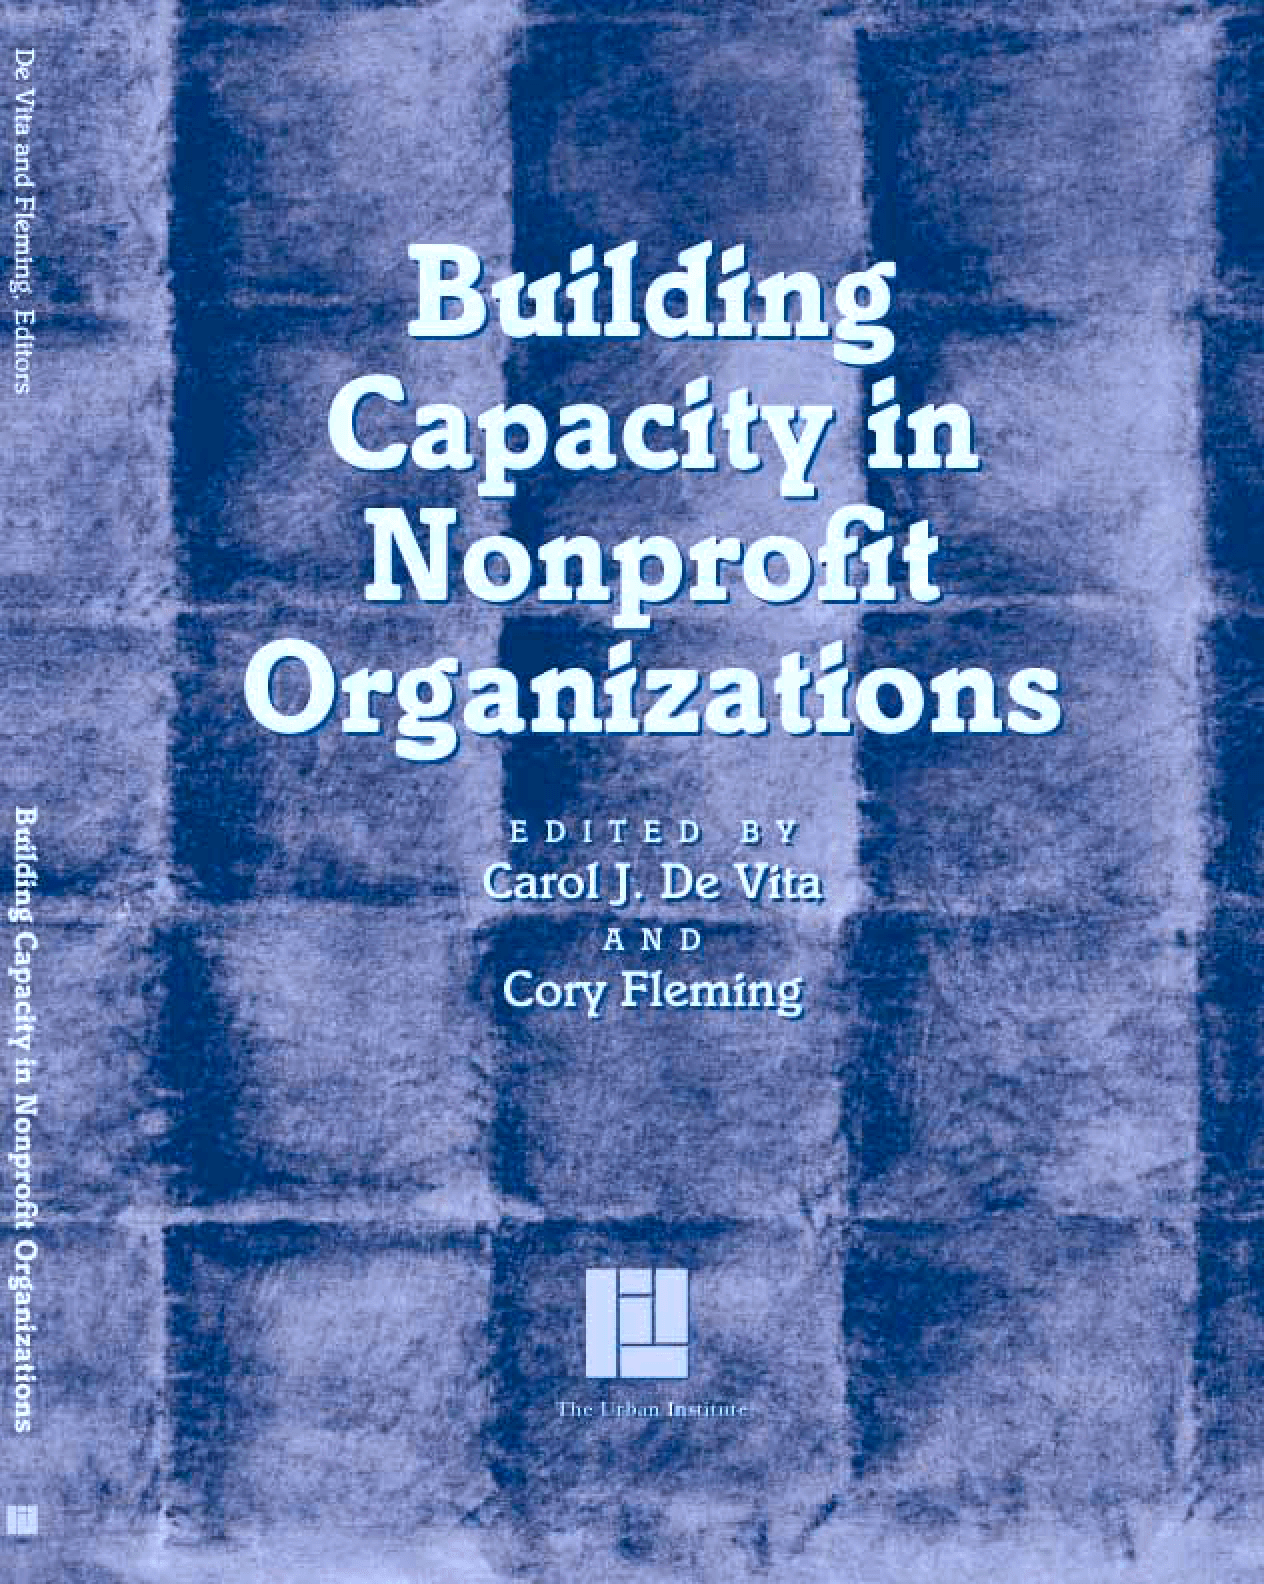 Building Capacity in Nonprofit Organizations